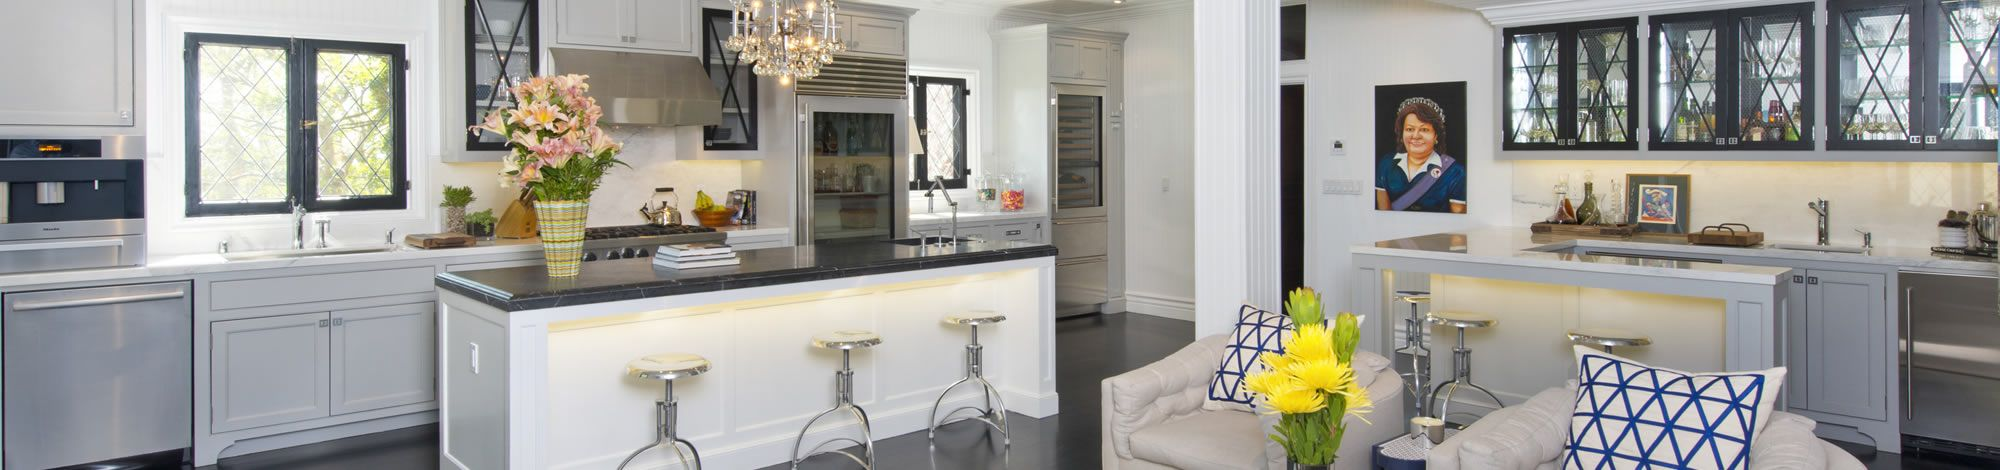 I LOVE Jeff Lewis, one of my favorite interior designers! | Home ...